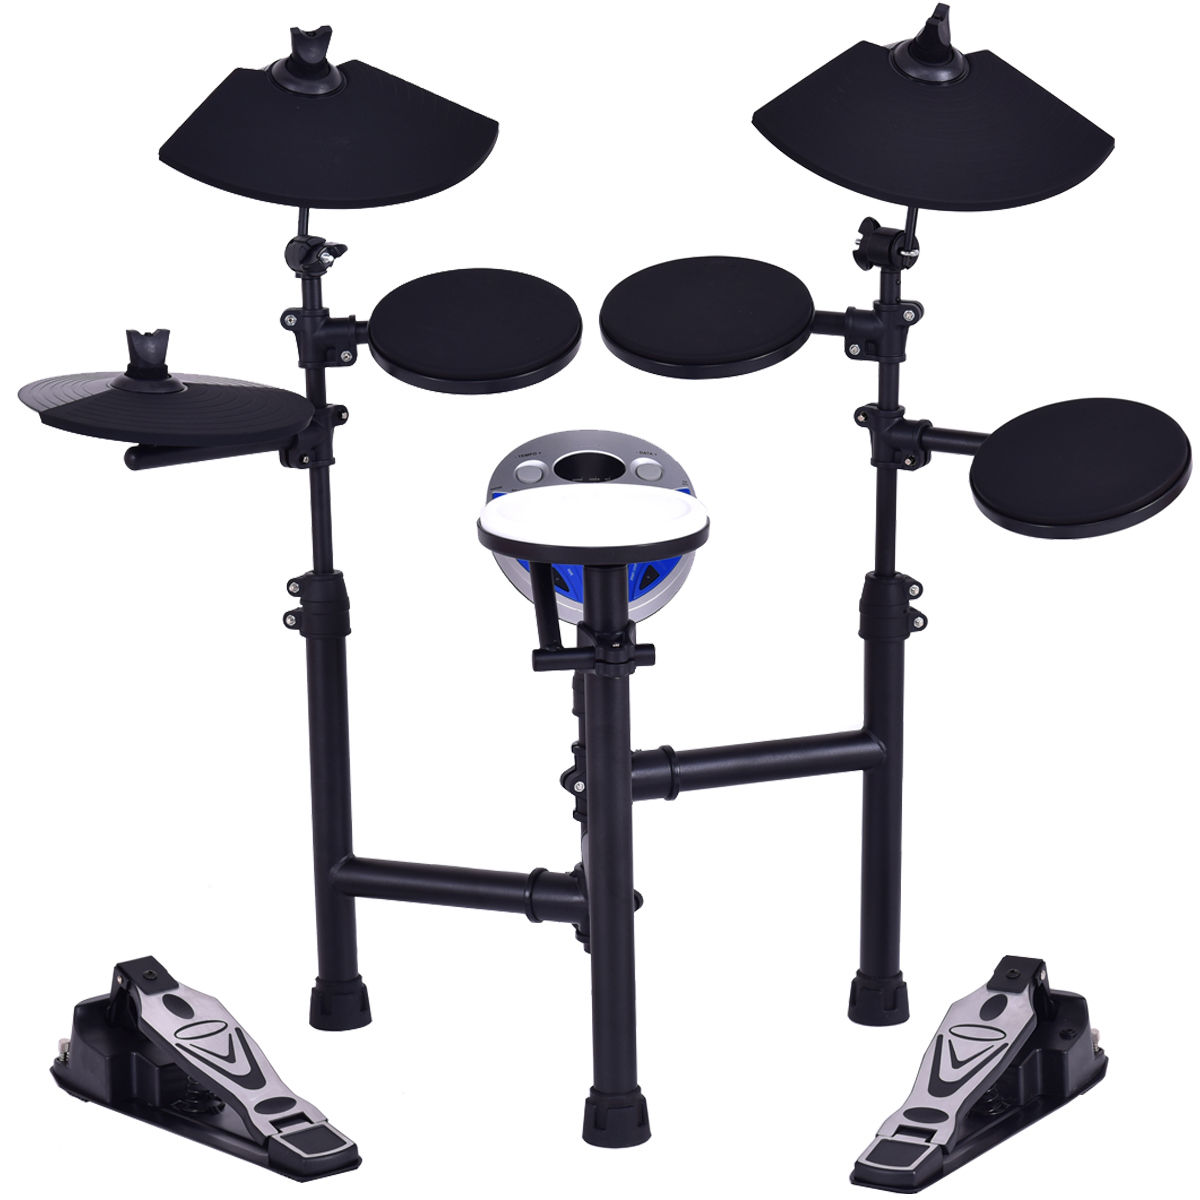 Gymax Electronic Drum Set Kit w/ 7.5'' Snare+ 7.5'' Toms+ 10'' Cymbal+ Drum Sticks